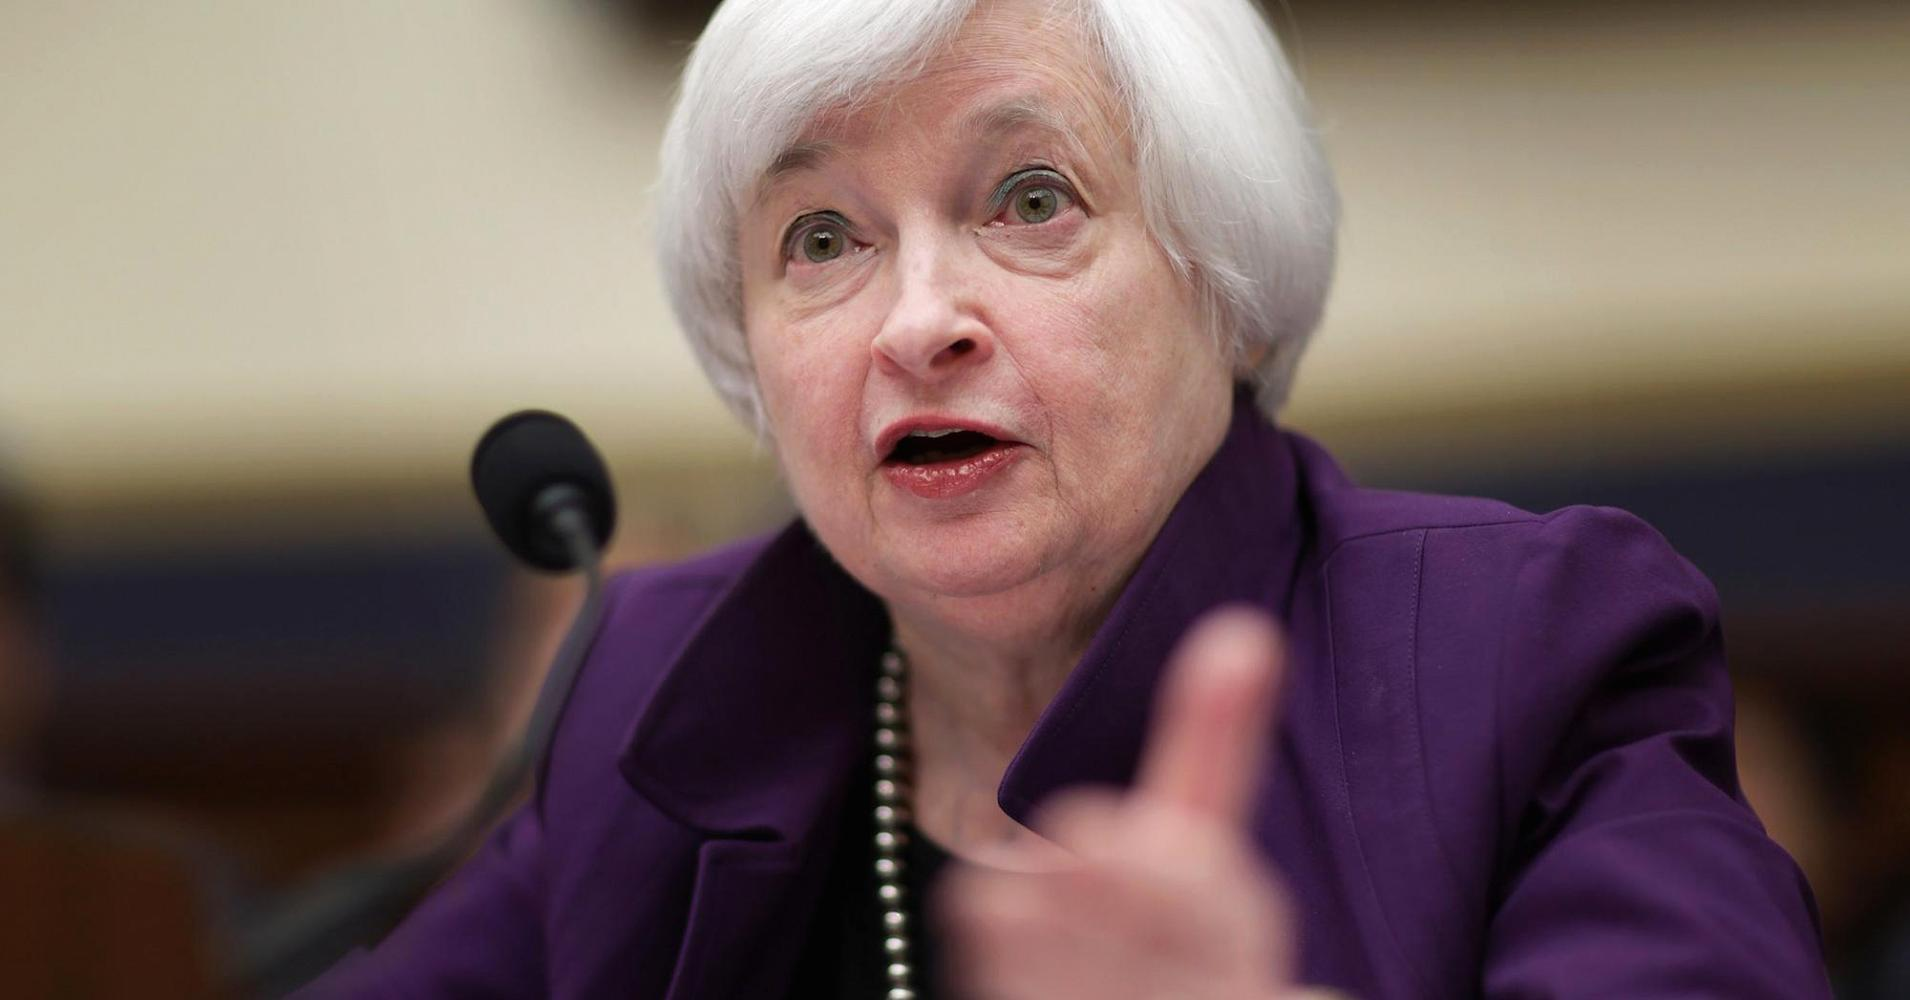 Yellen defends Fed policy, calls for gradual hikes